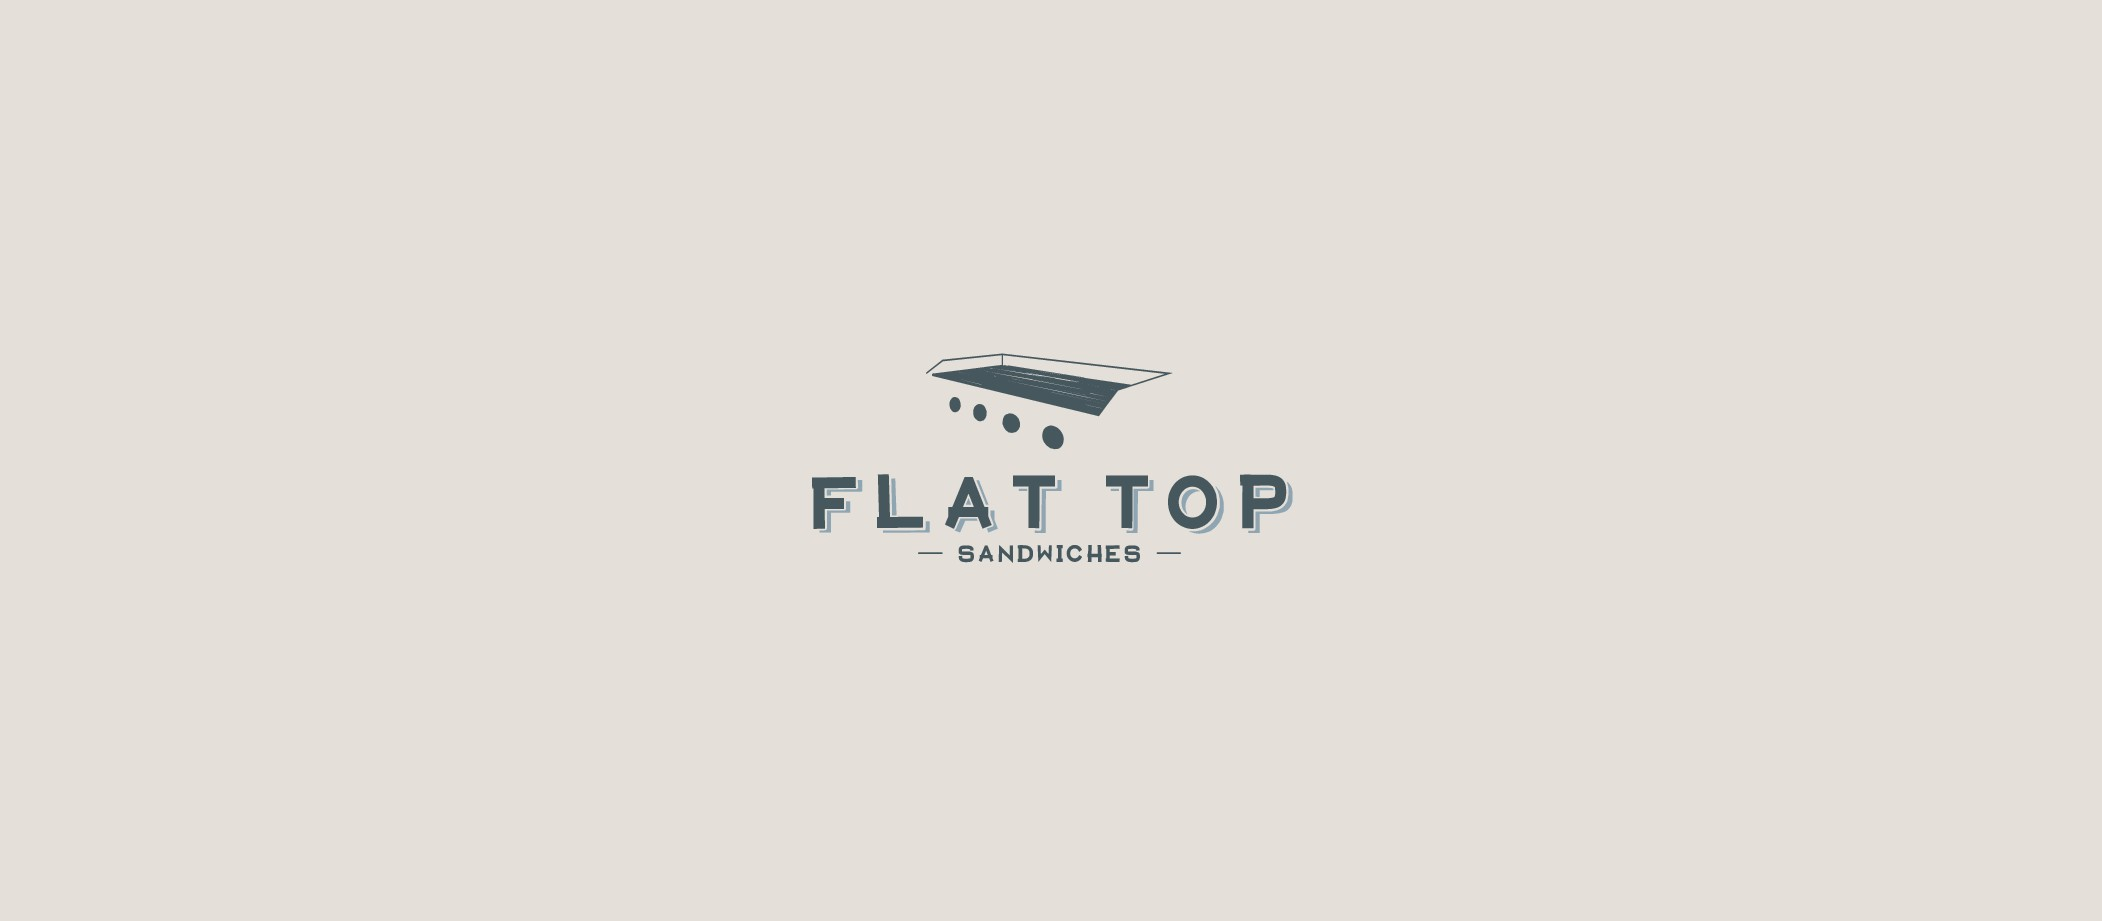 Help us launch Flat Top Sandwiches by creating an awesome, classic, iconic logo!